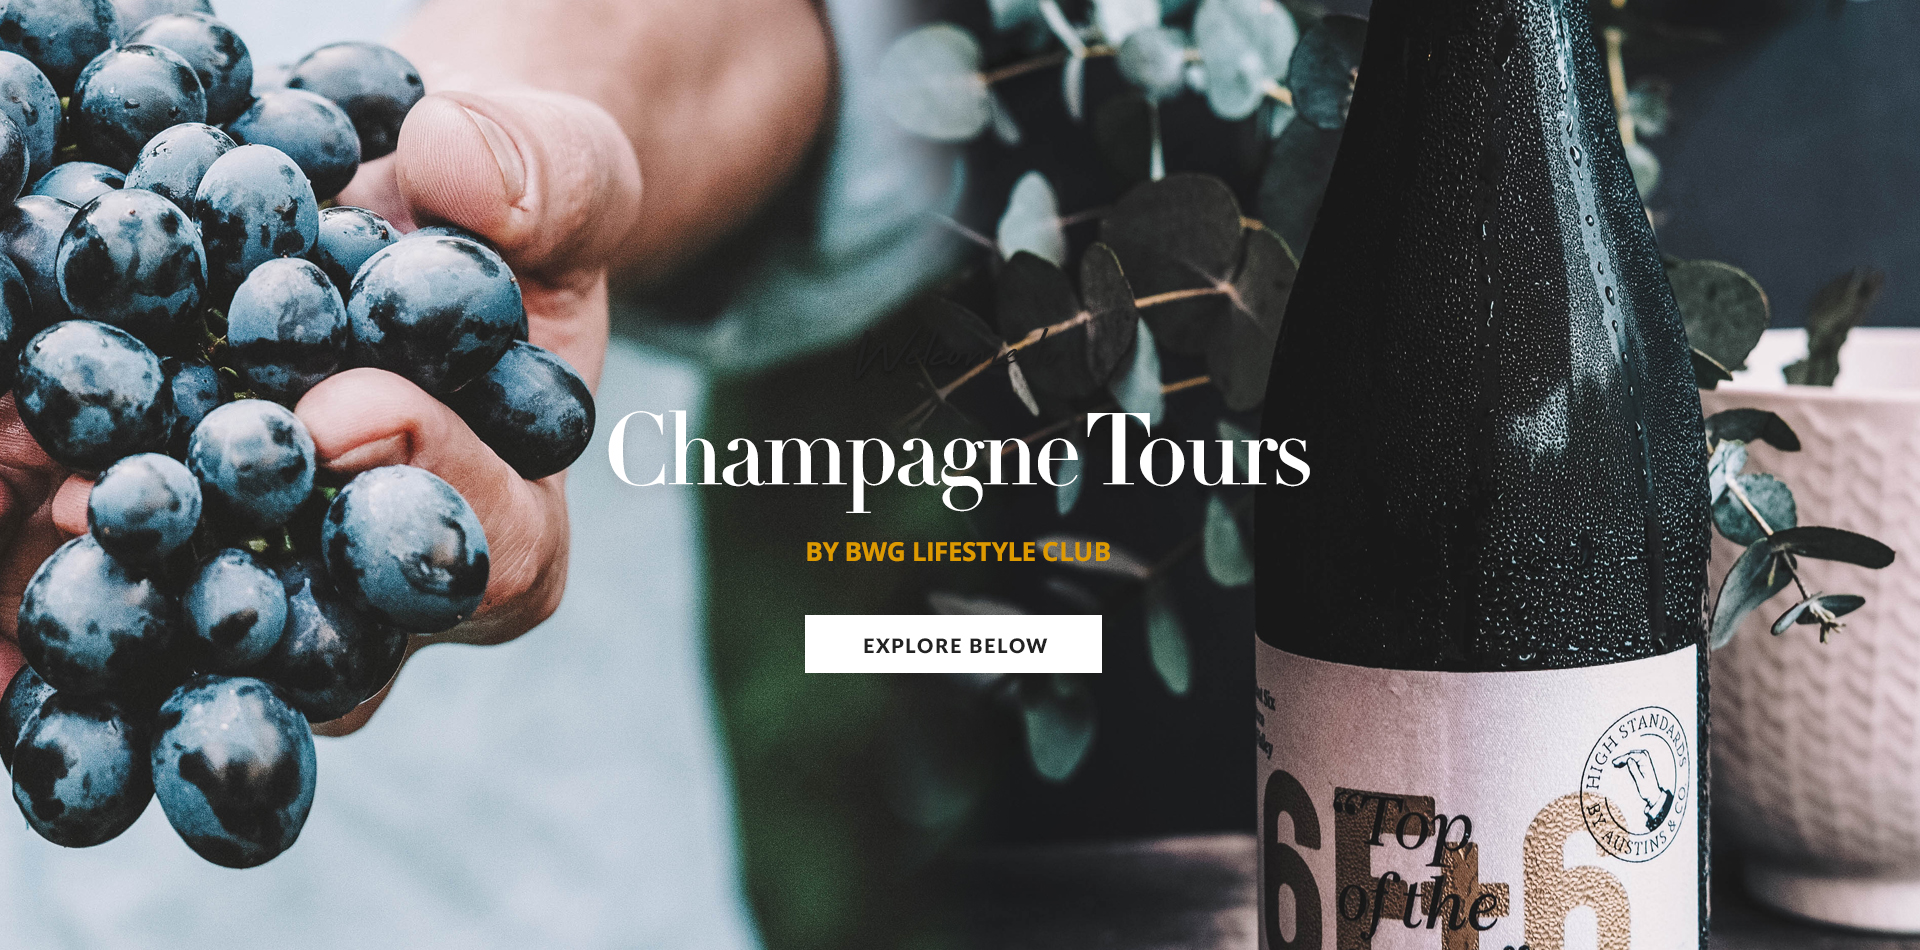 champagne tours page banner.jpg